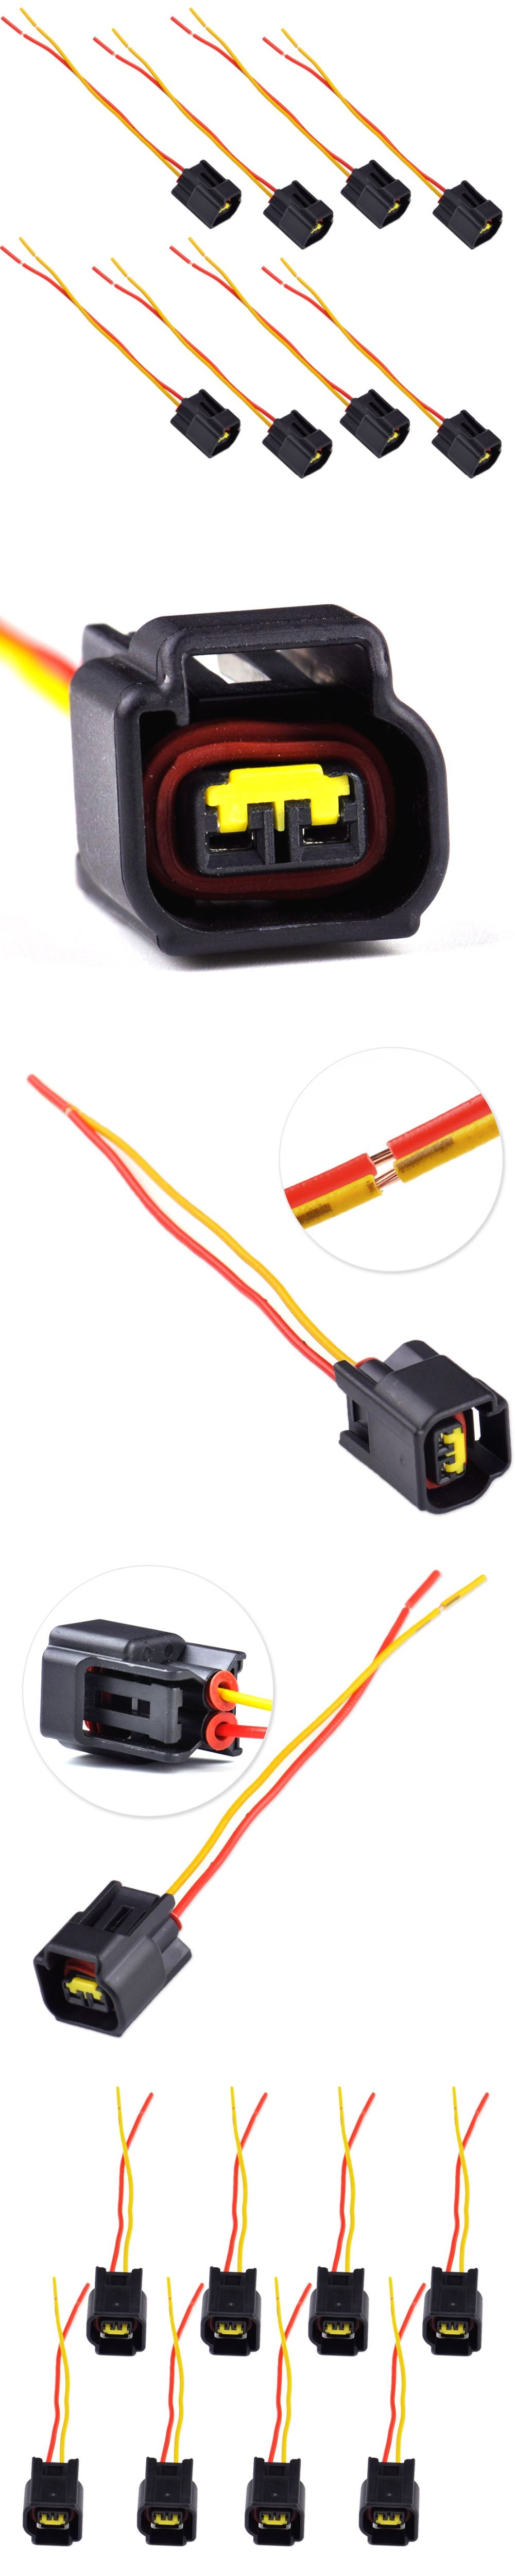 DWCX 8x Ignition Coil Harness Connector Modular for Ford